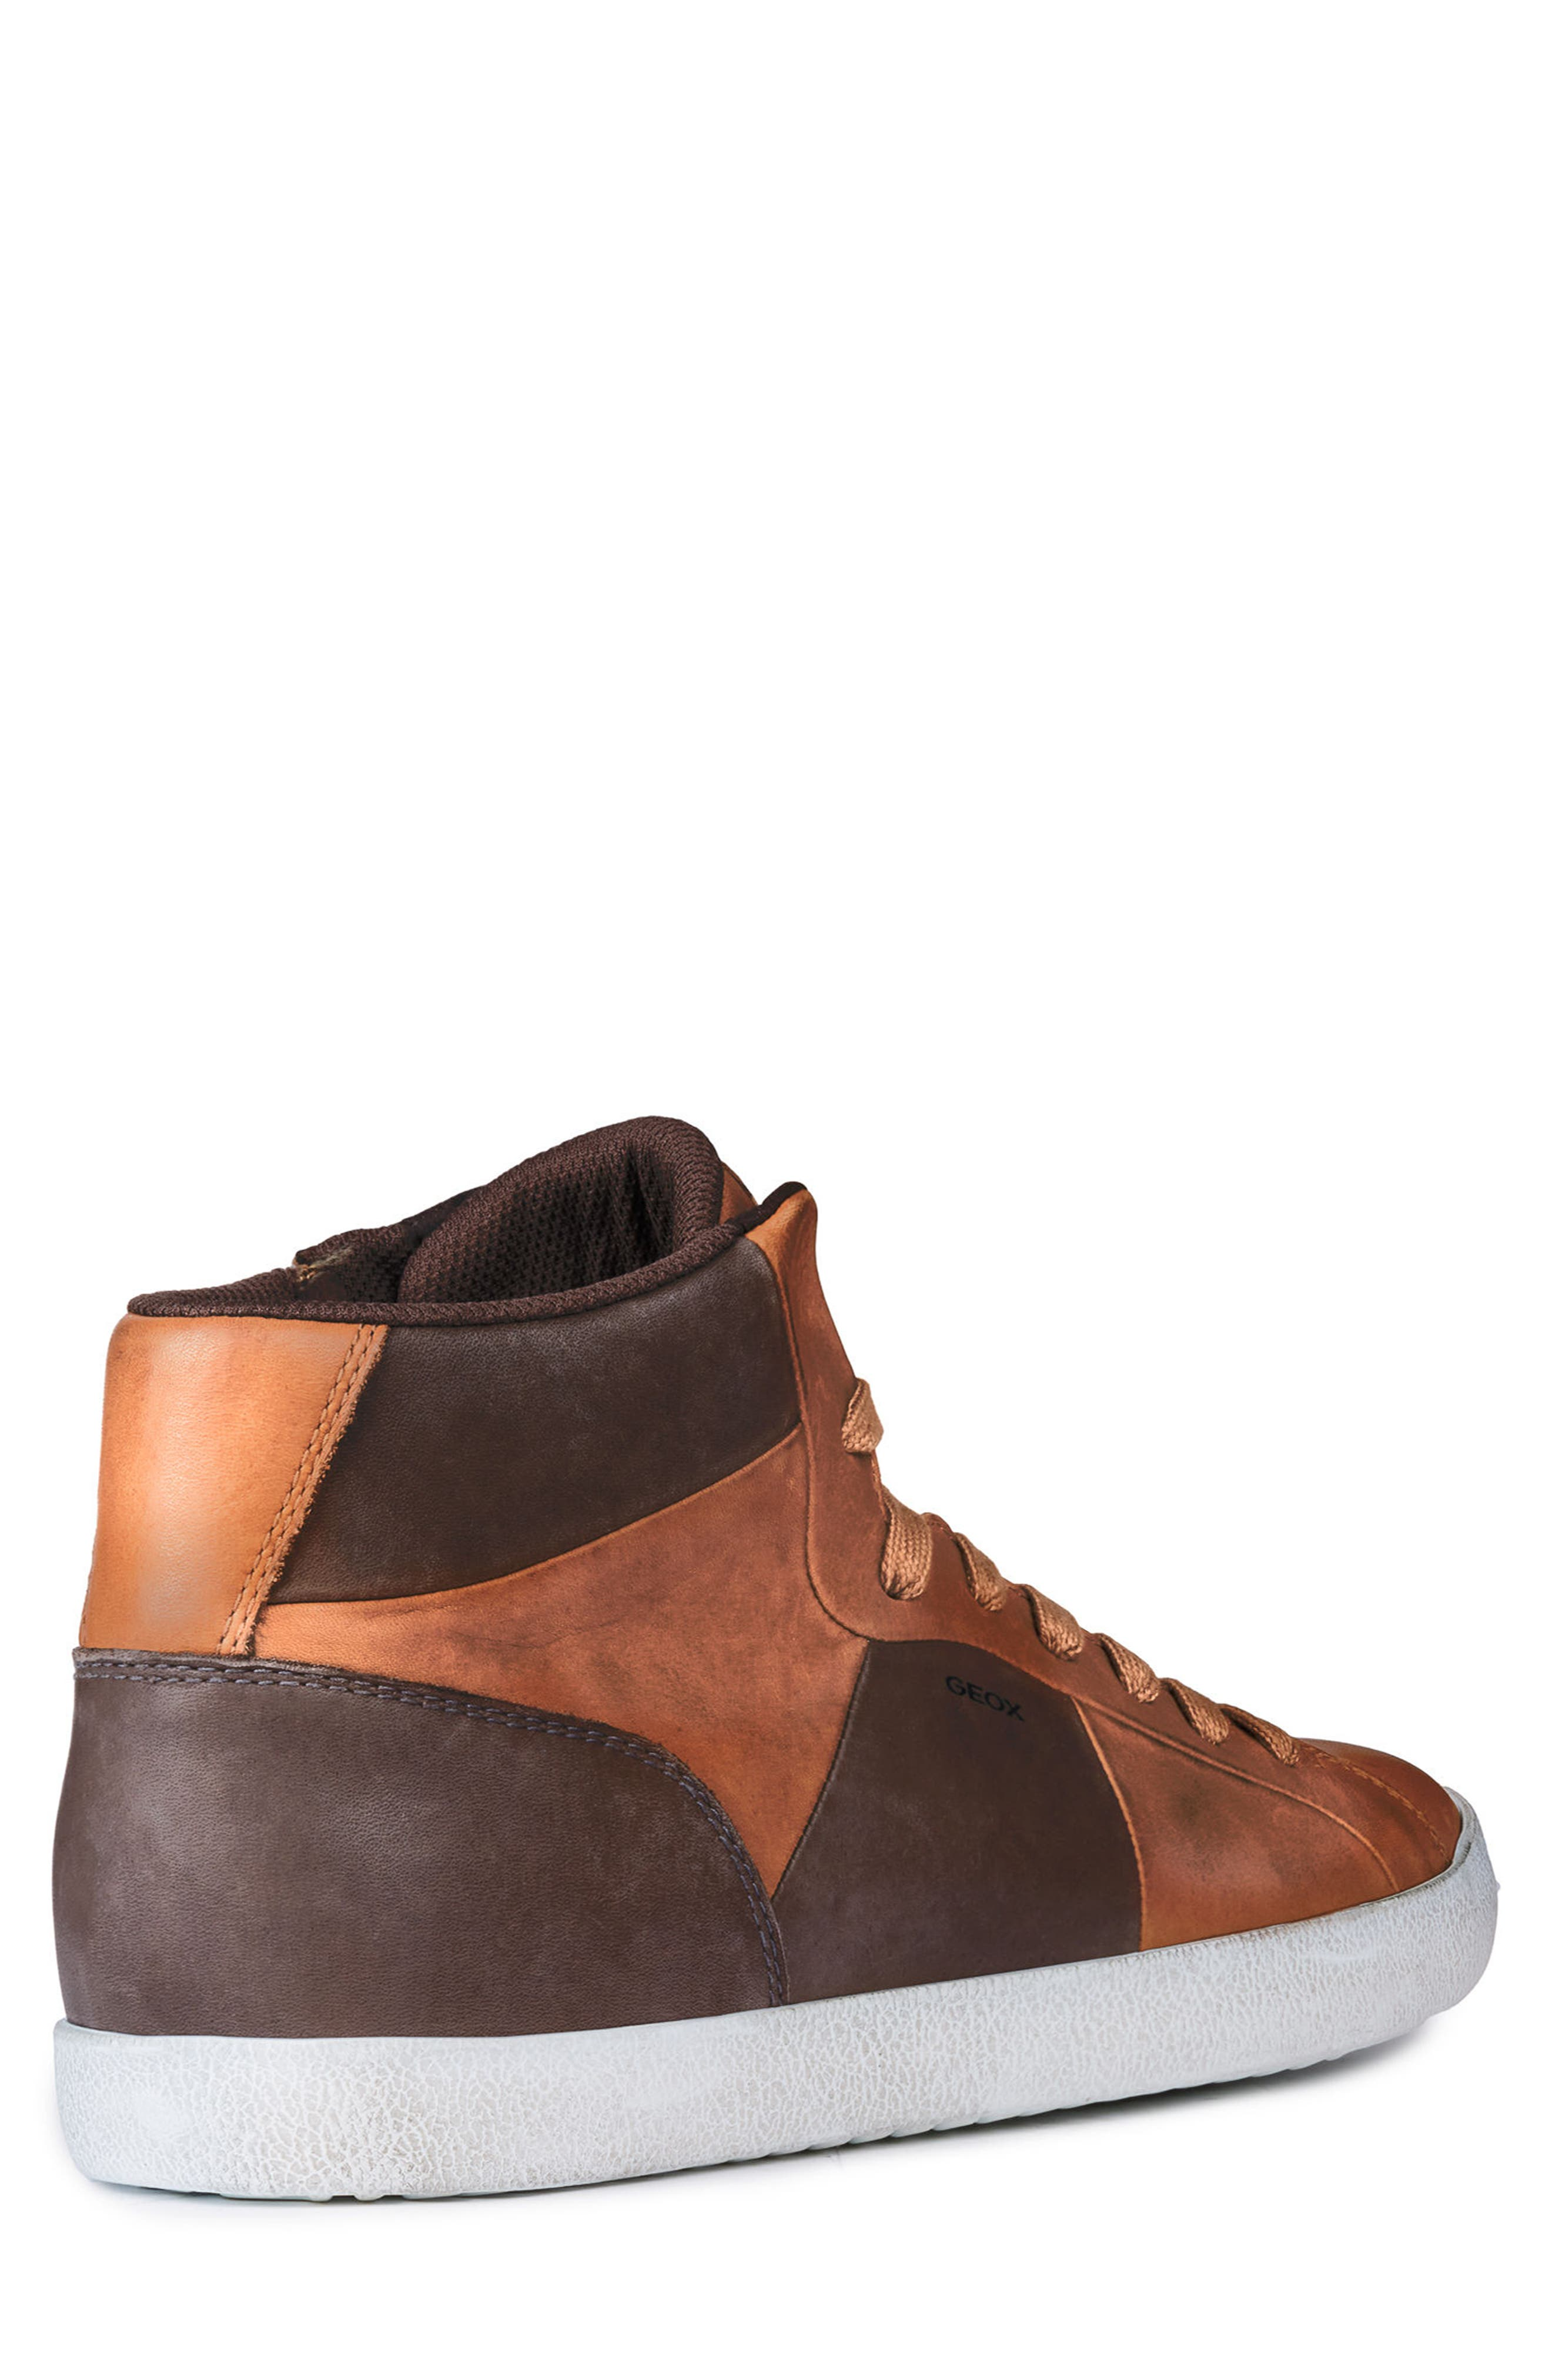 Smart 84 High Top Sneaker,                             Alternate thumbnail 2, color,                             COGNAC/ COFFEE LEATHER